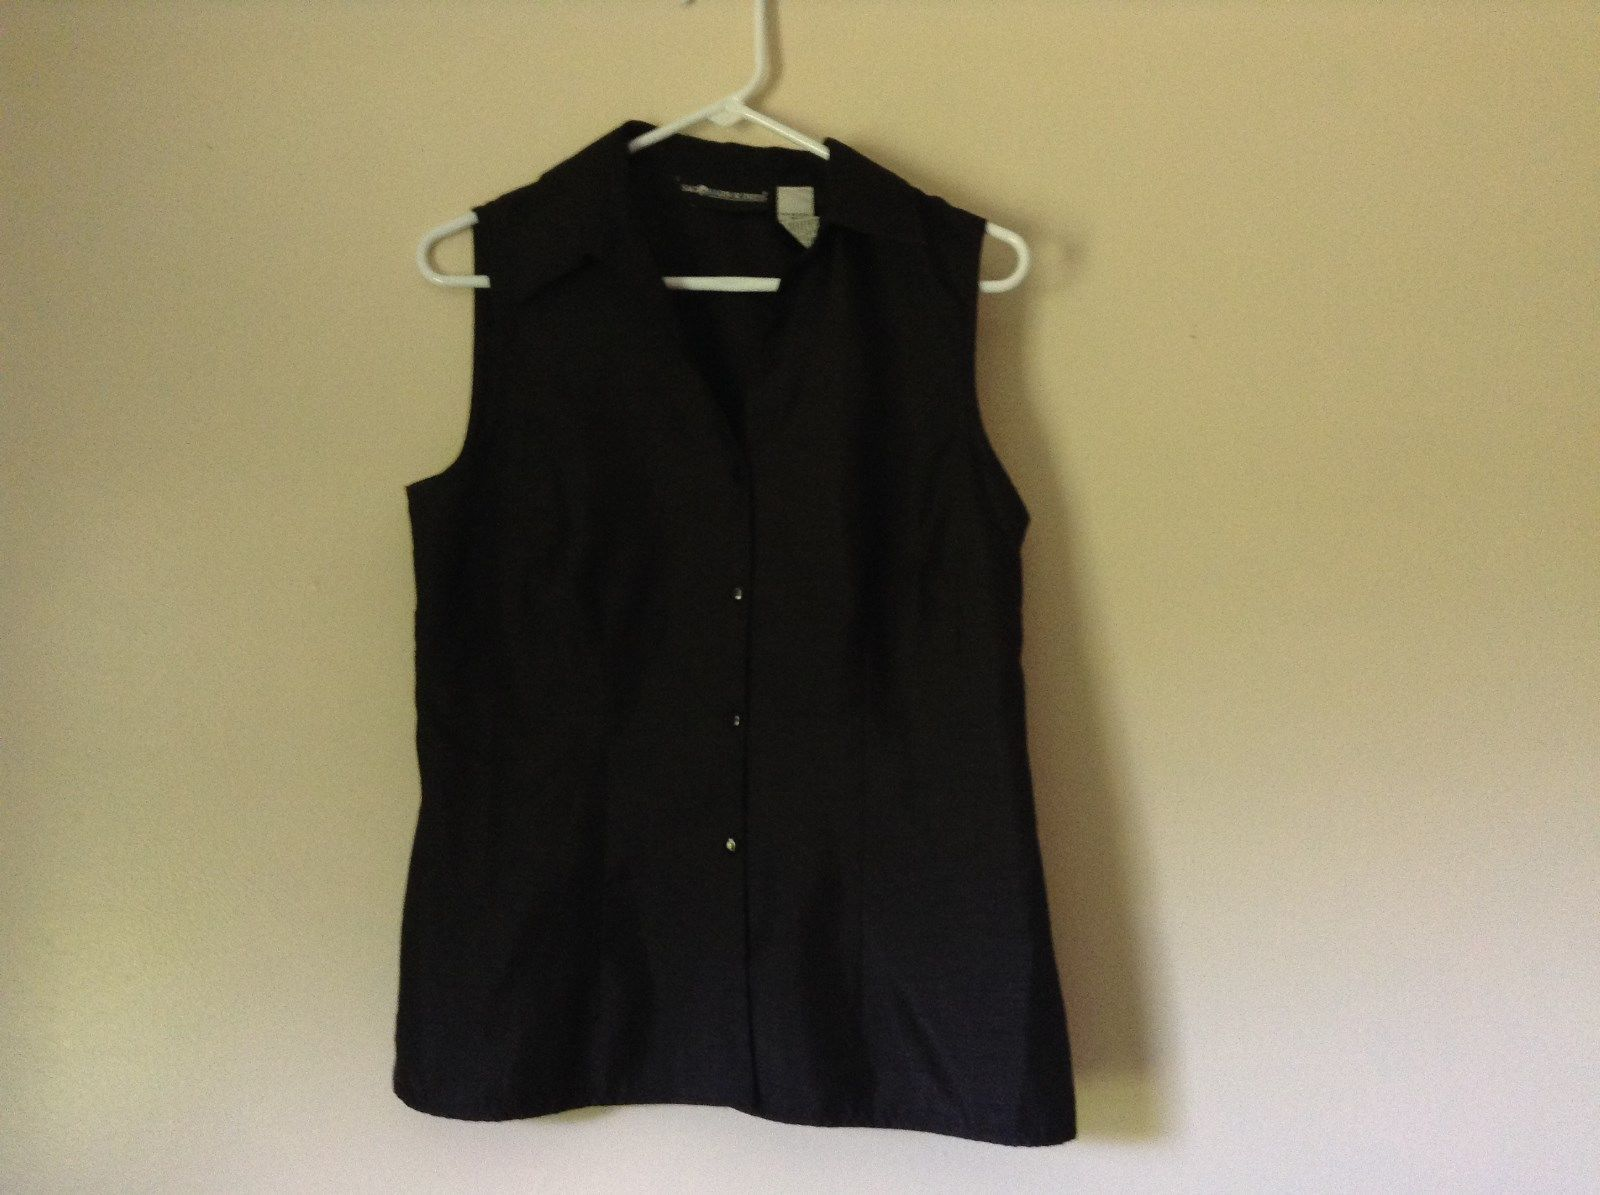 Sag Harbor Formal Dress Black Vest 100 Percent Polyester No Size Tag